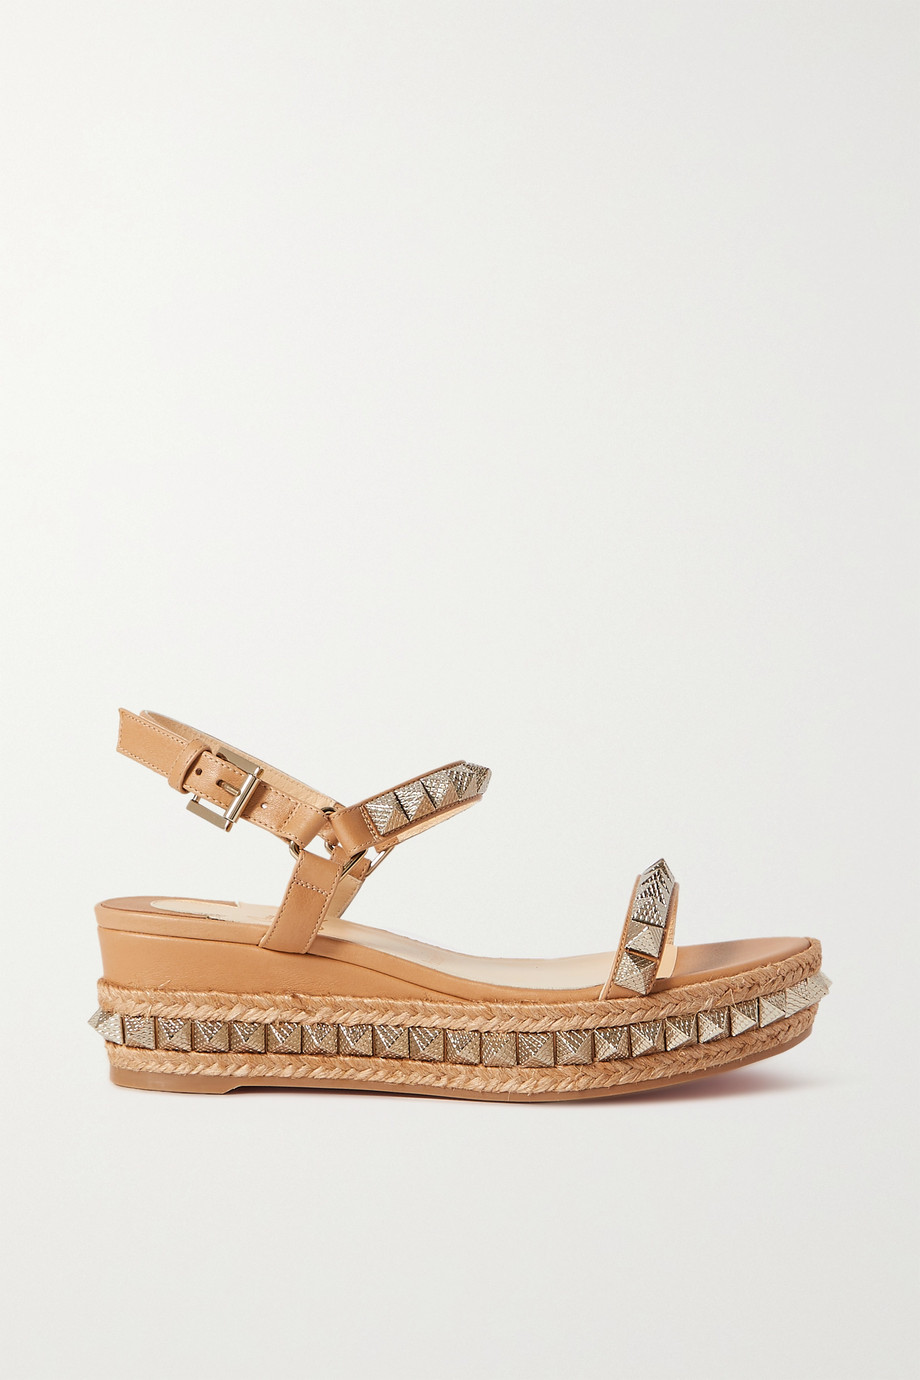 CHRISTIAN LOUBOUTIN Pyraclou 60 studded leather wedge sandals